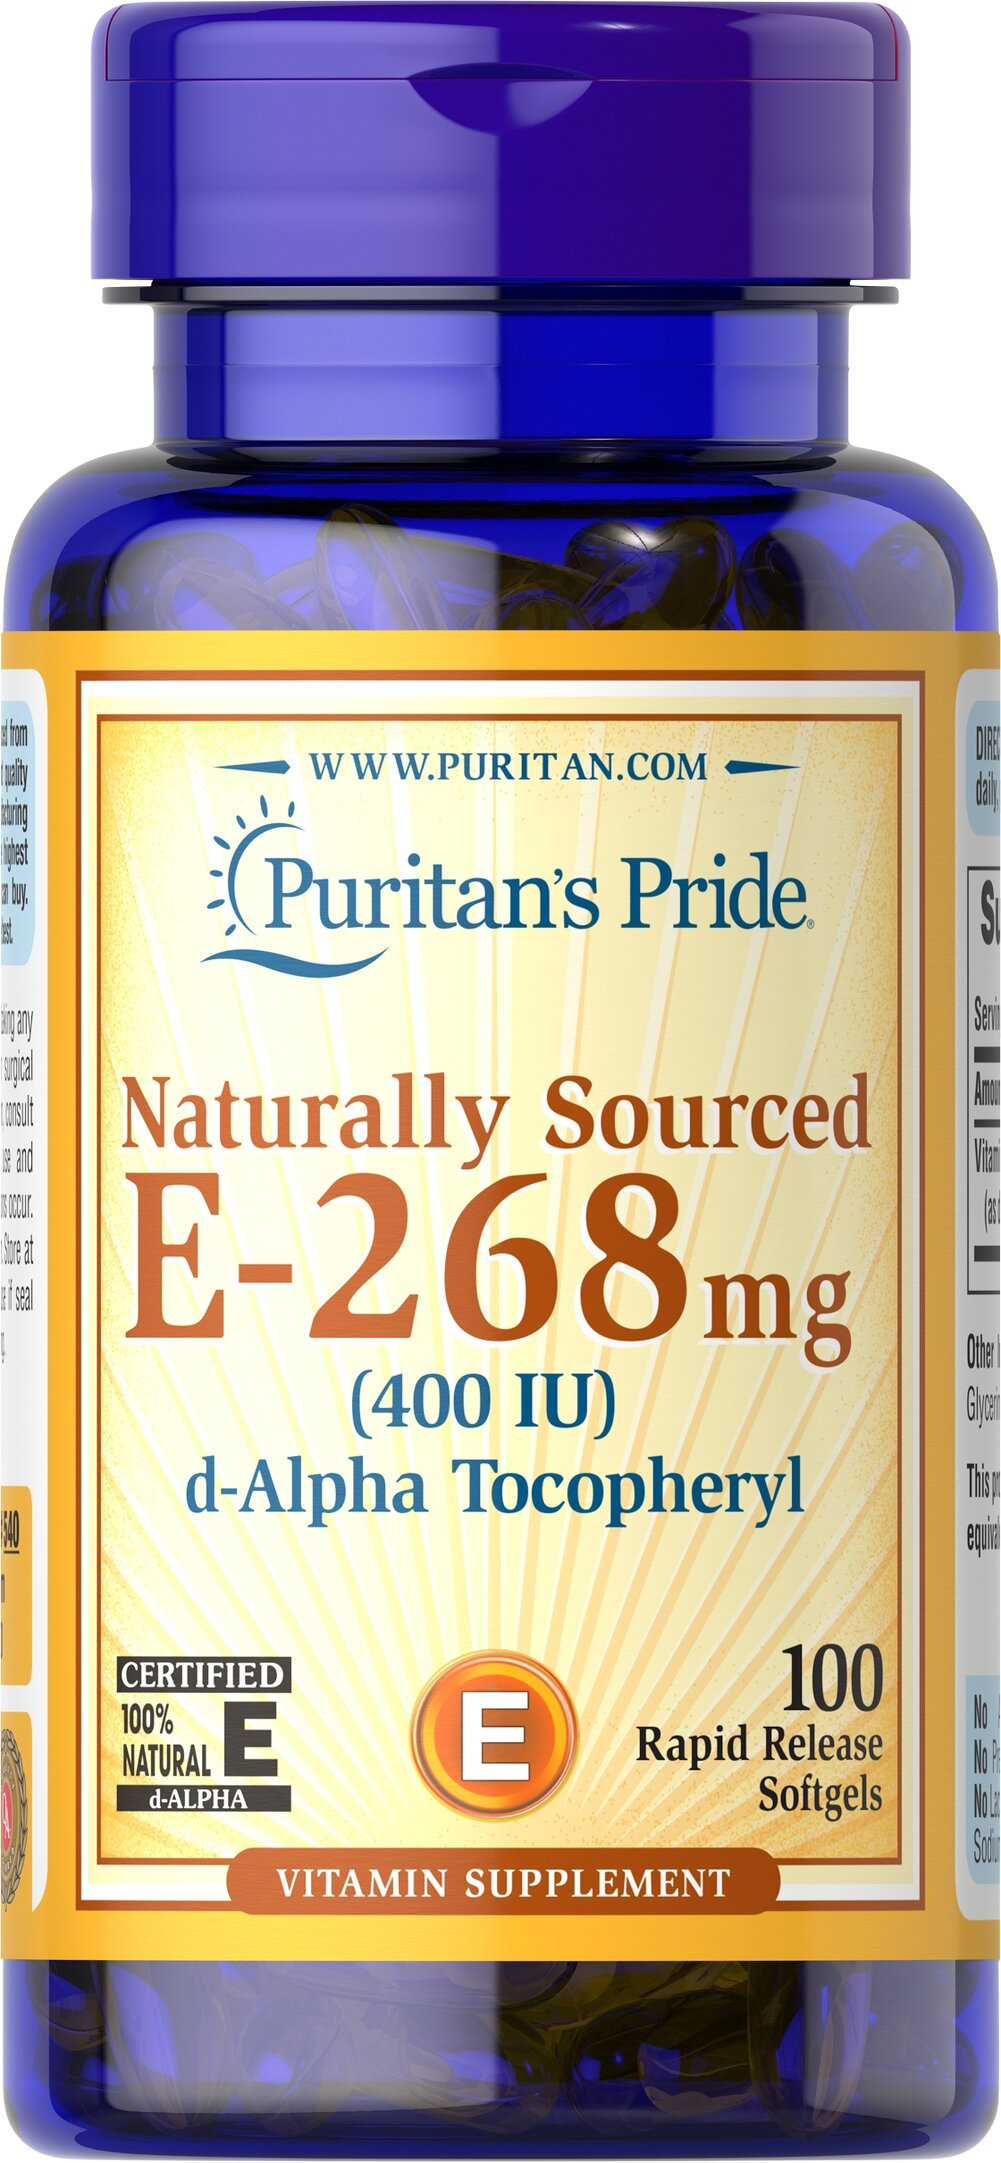 Vitamin E-400 iu 100% Natural <p><strong>Vitamin E</strong> is a potent antioxidant that helps fight free radicals.** Studies have shown that oxidative stress caused by free radicals may contribute to the premature aging of cells.** Vitamin E also promotes immune function and helps support cardiovascular health.** Our Vitamin E is 100% natural and comes in a convenient to use softgel.</p> 100 Softgels 400 IU $23.99